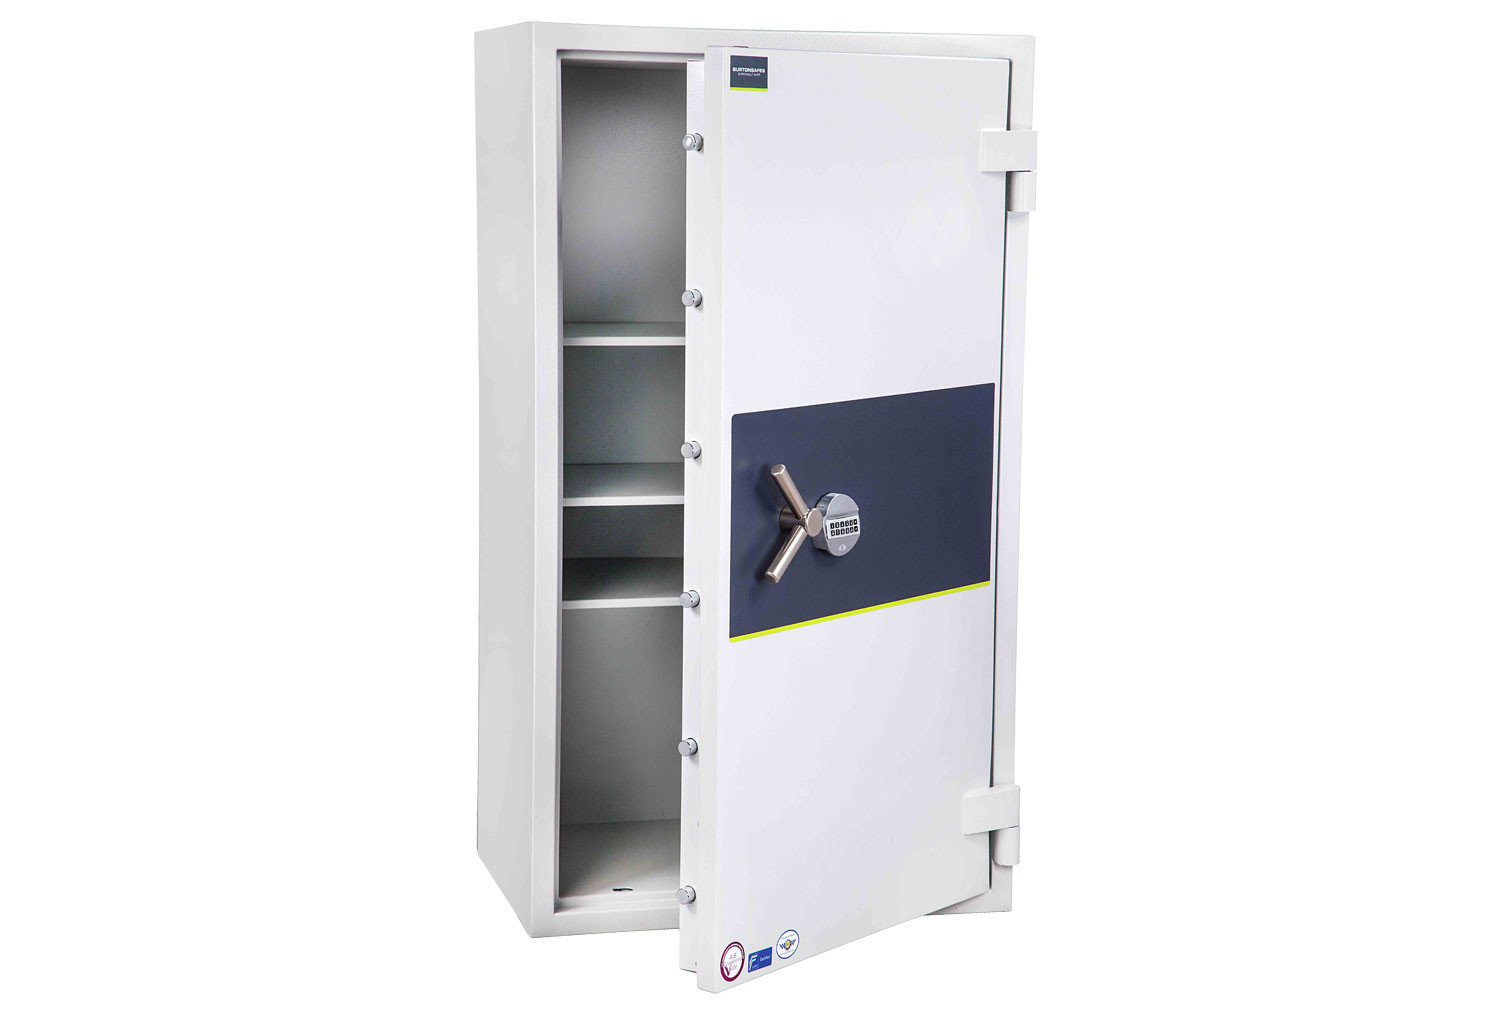 Burton Eurovault Aver Grade 2 Size 7 Safe With Electronic Lock (462ltrs)